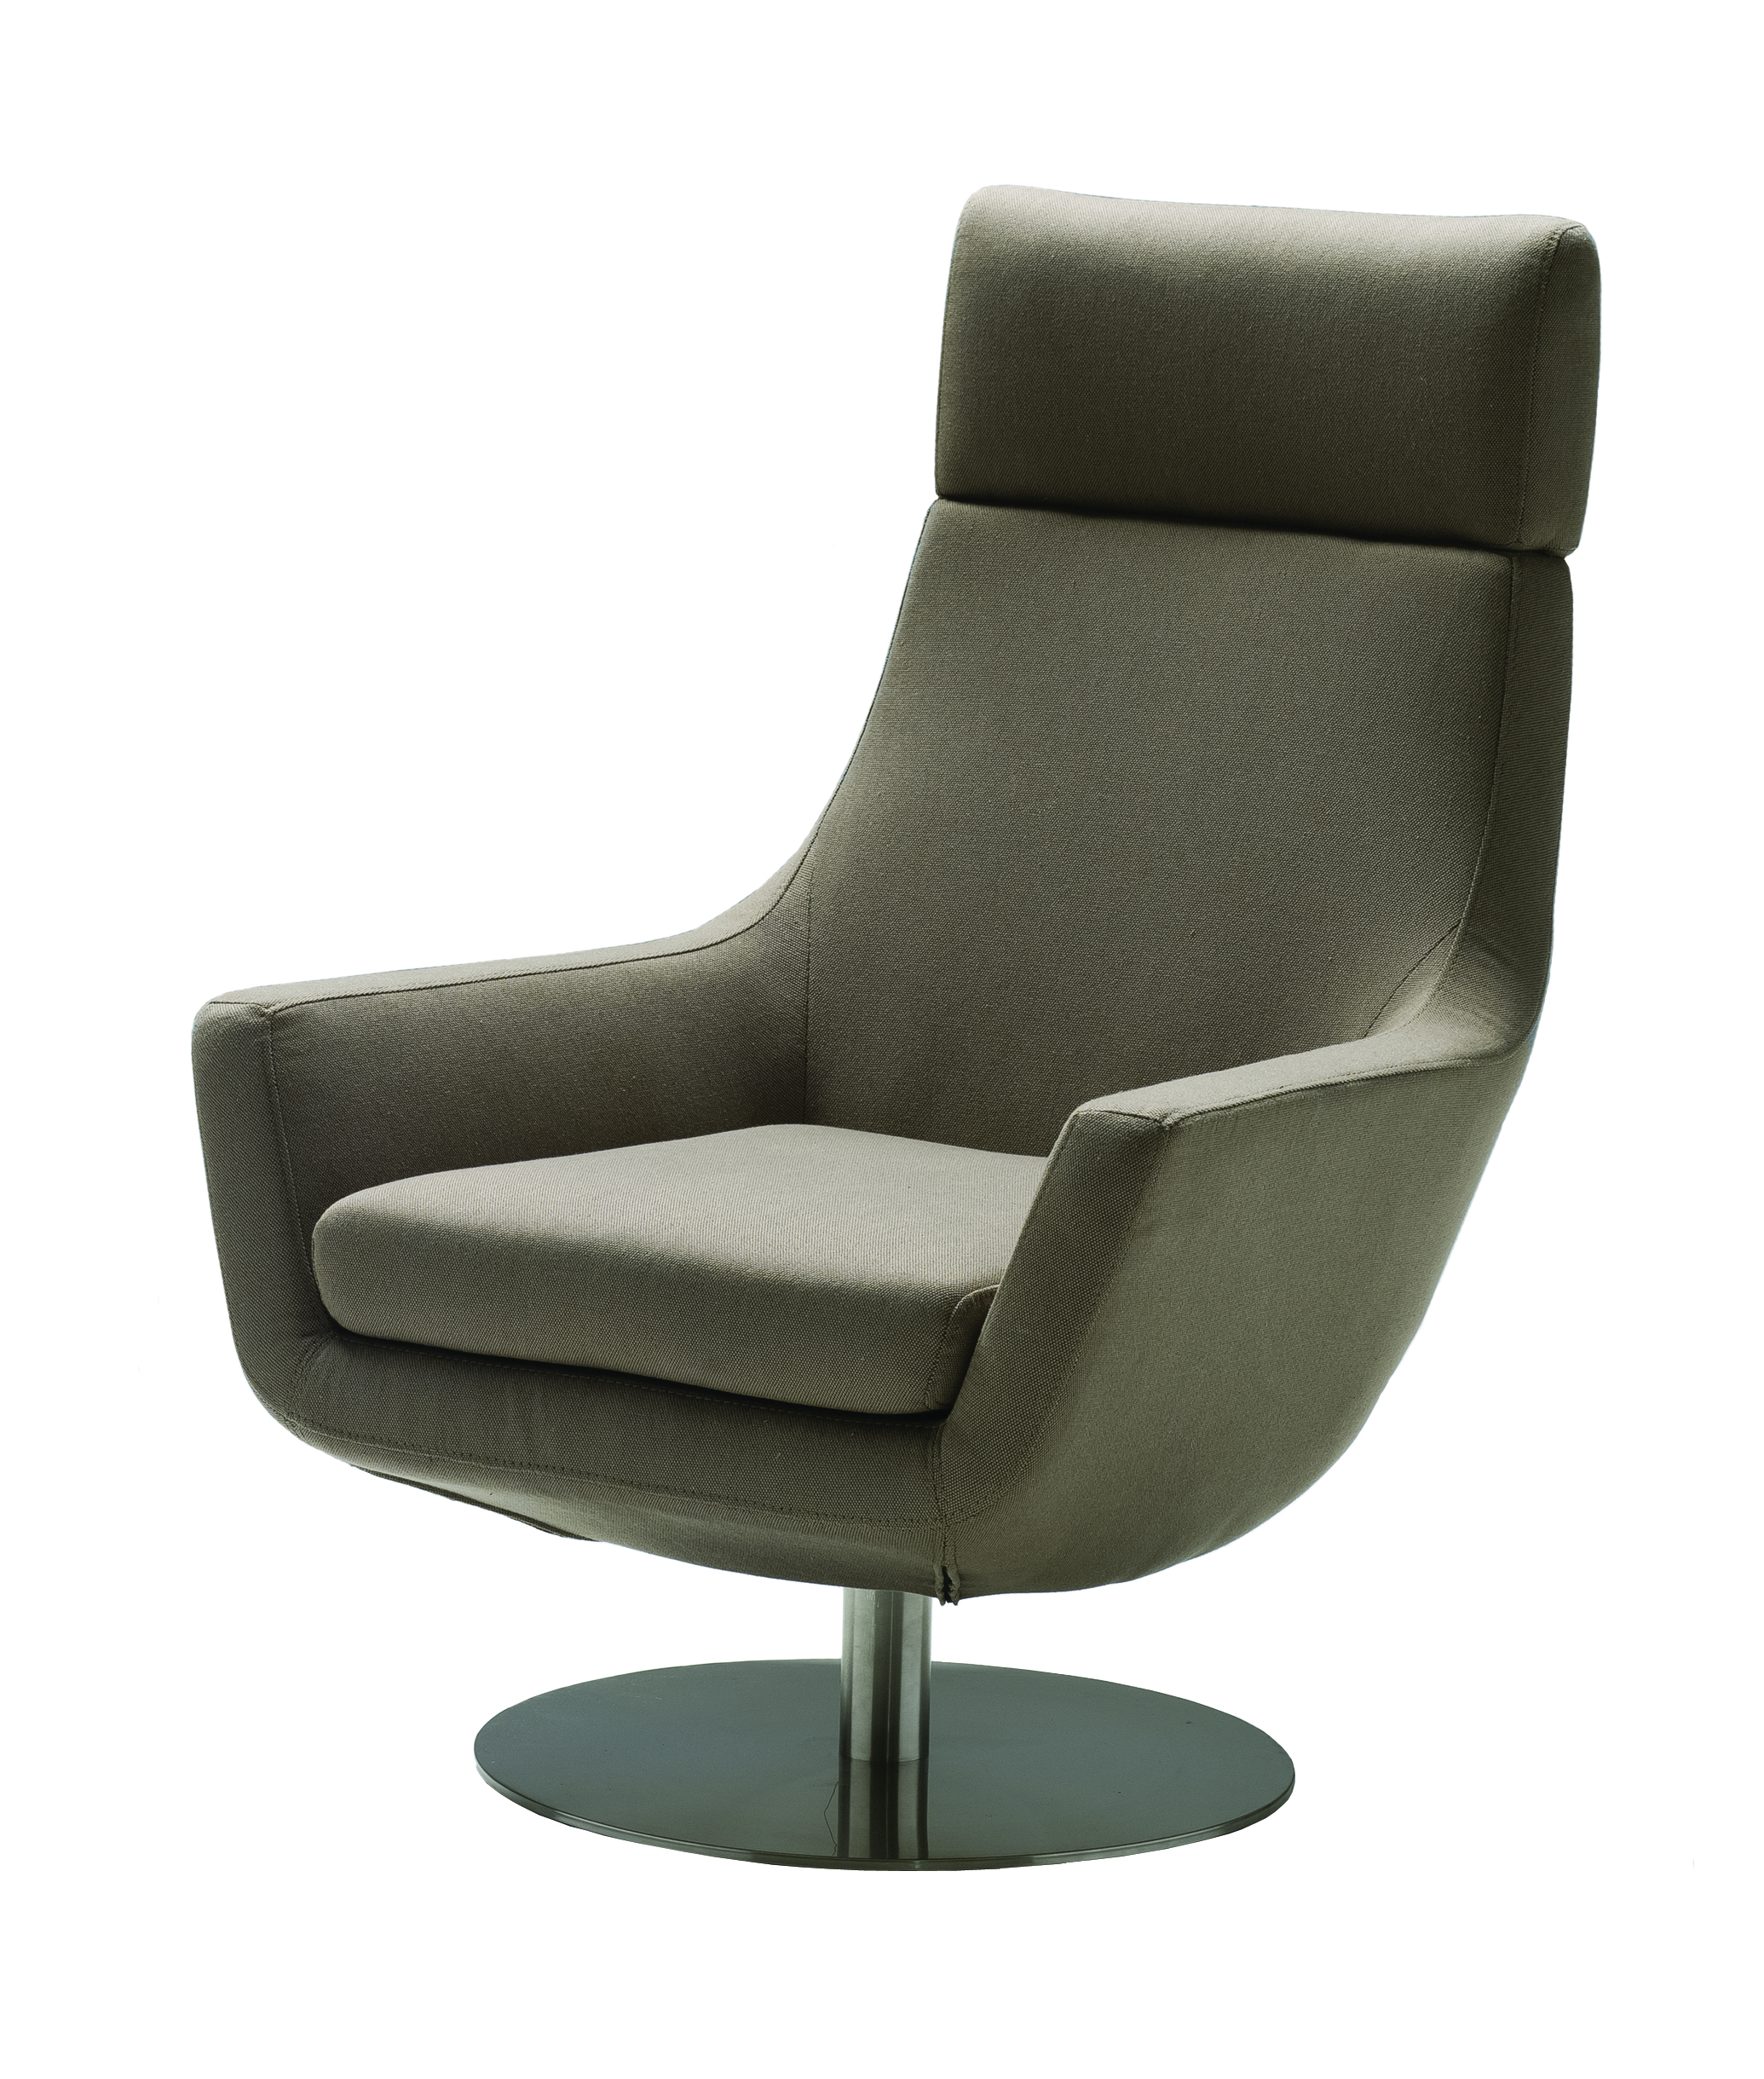 Swivel Chair Pivot swivel chair